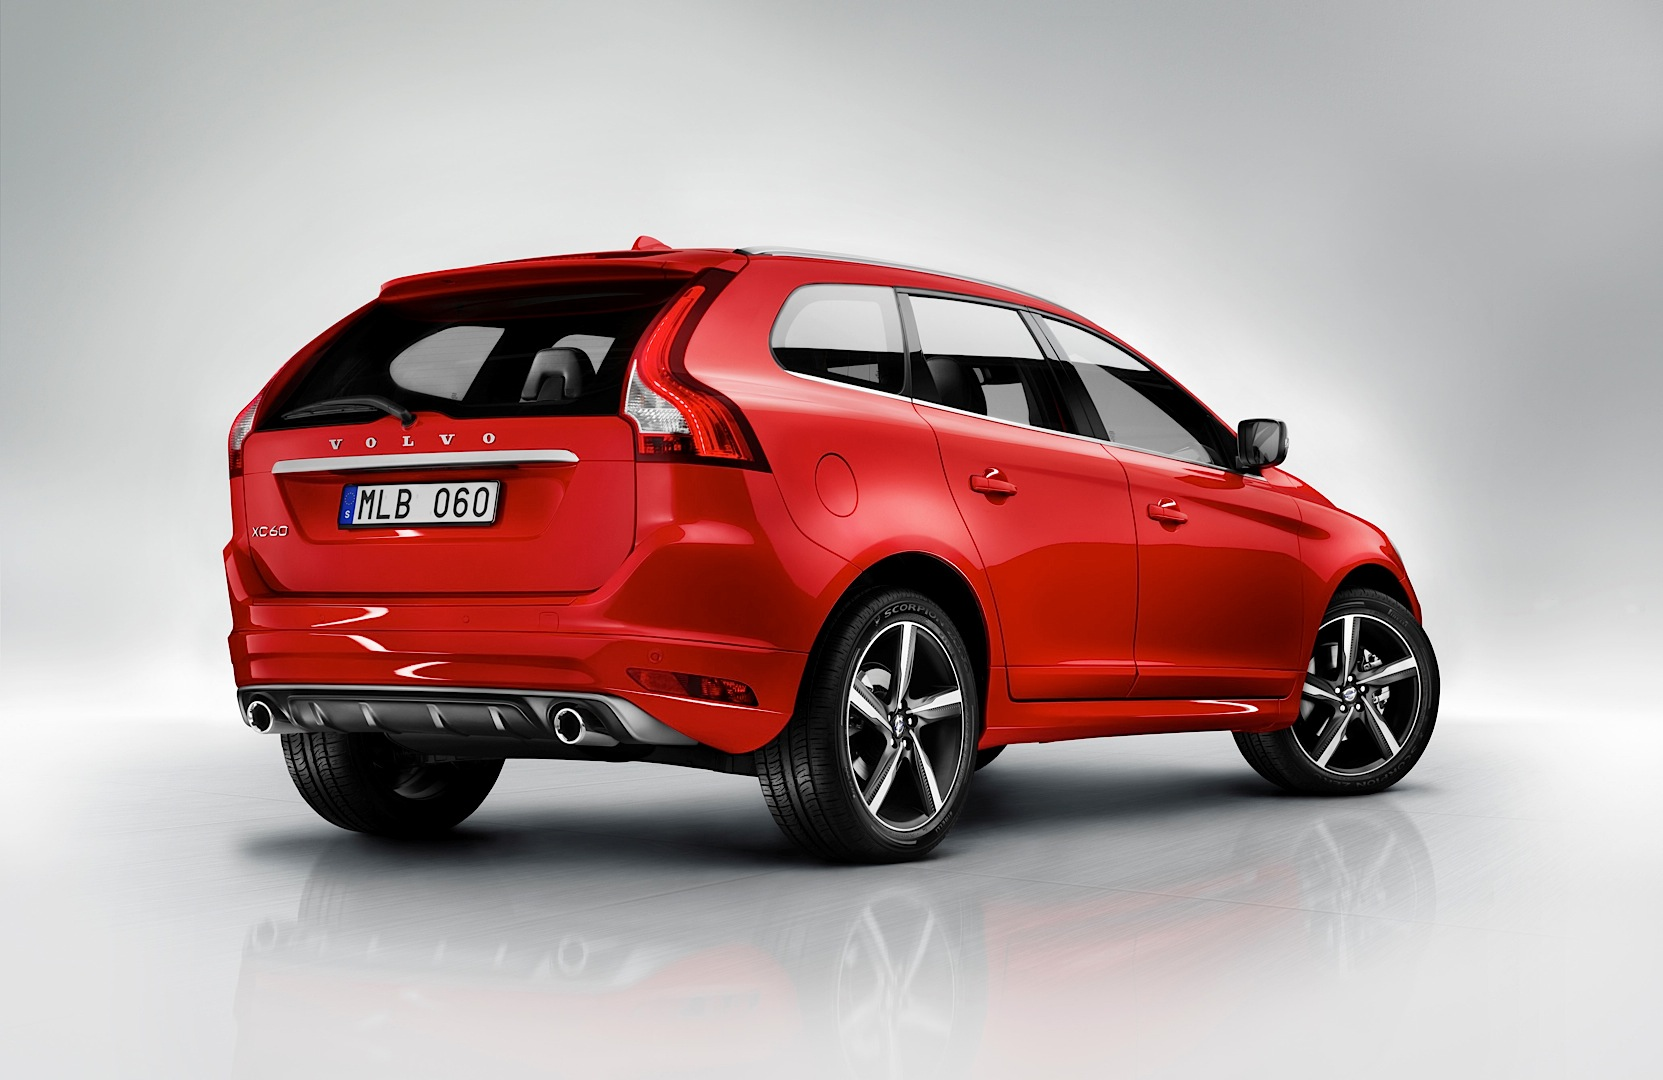 Volvo Xc 60 T6 >> 2014 Volvo XC60 in Detail [Video] - autoevolution